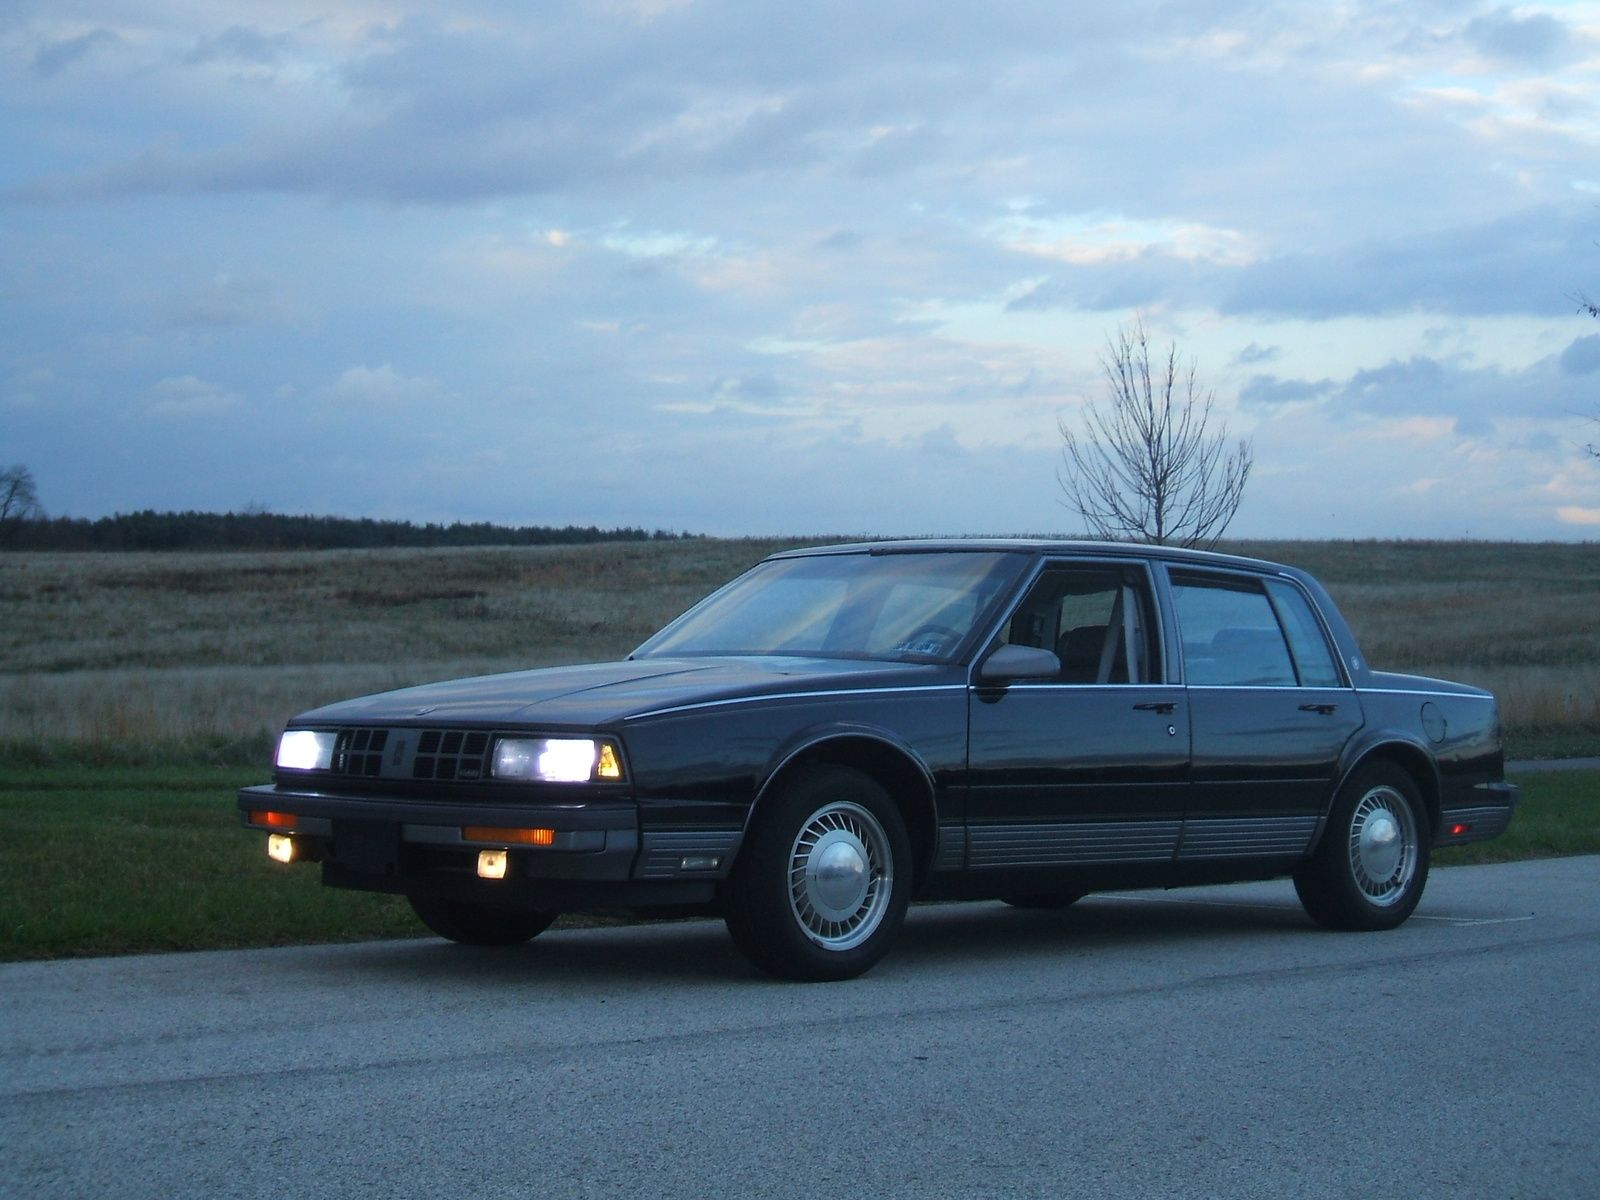 1990 Oldsmobile Ninety Eight Touring Sedan Midnight Blue So Dark It Looked Like Black Gm S 3800 V 6 One Of The Best Engines Ever Oldsmobile Touring Sedan